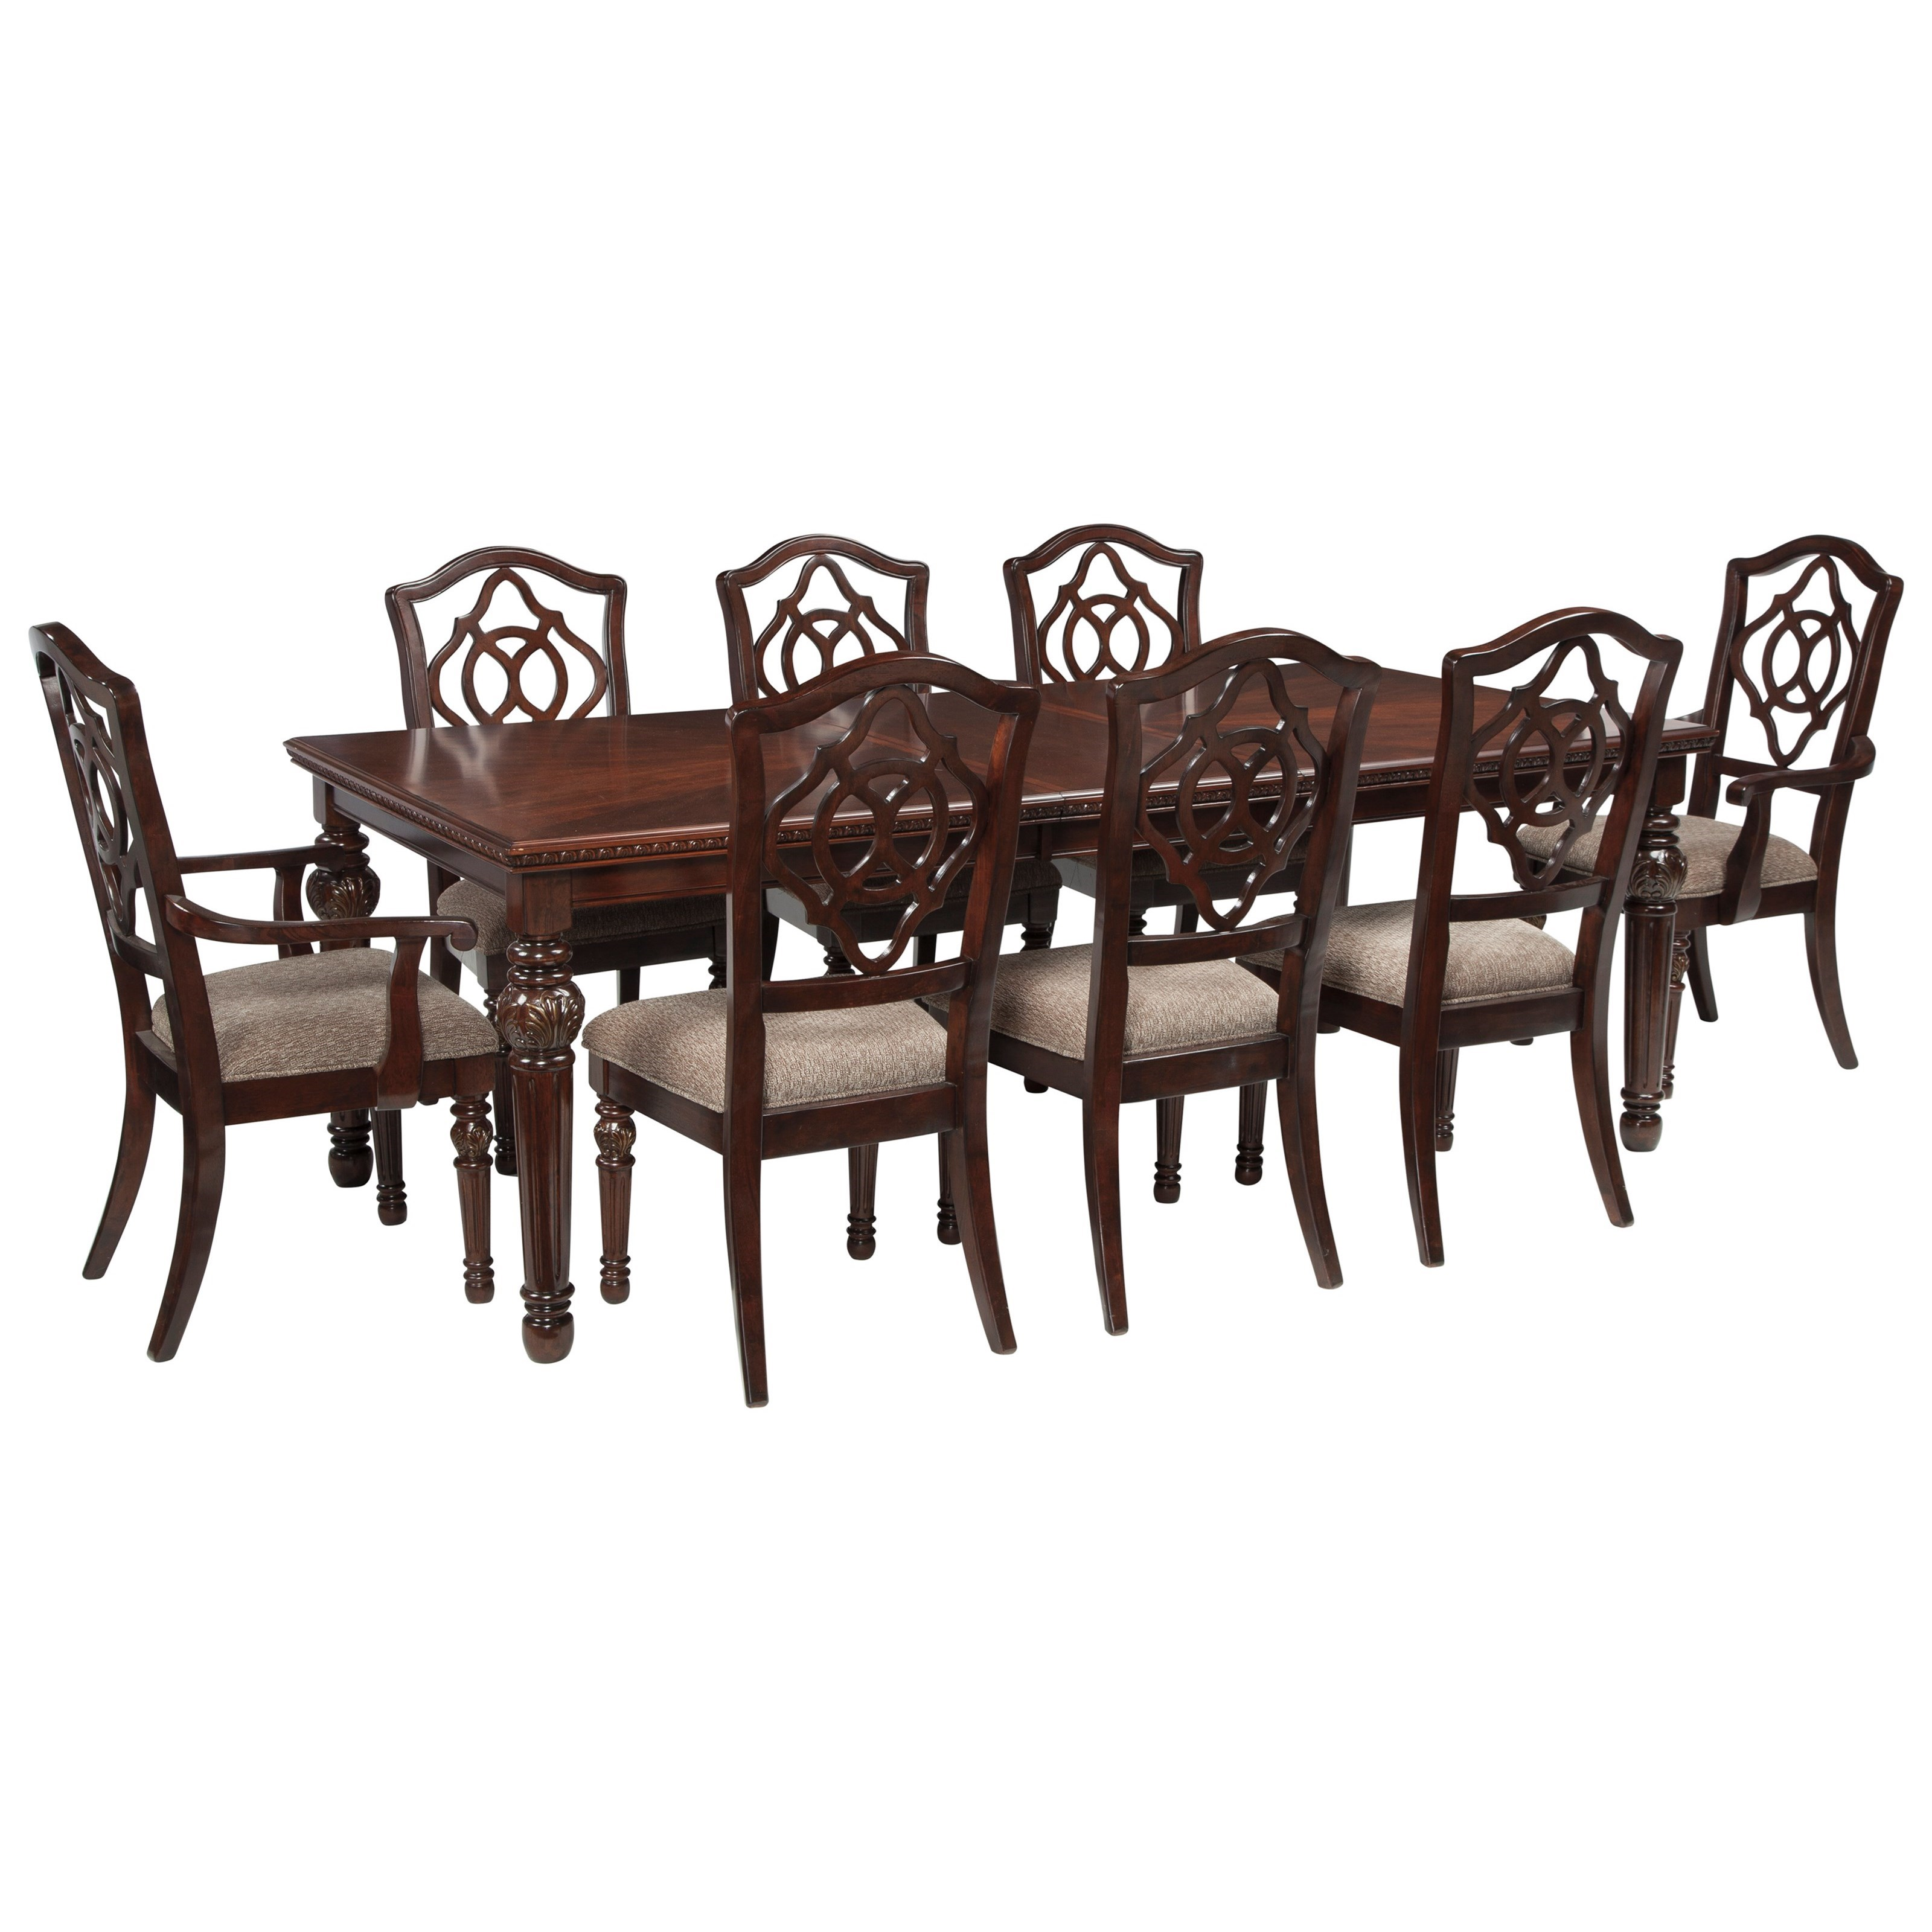 Signature Design by Ashley Leahlyn 9-Piece Rectangular Dining Table Set - Item Number: D626-35+2x01A+6x01